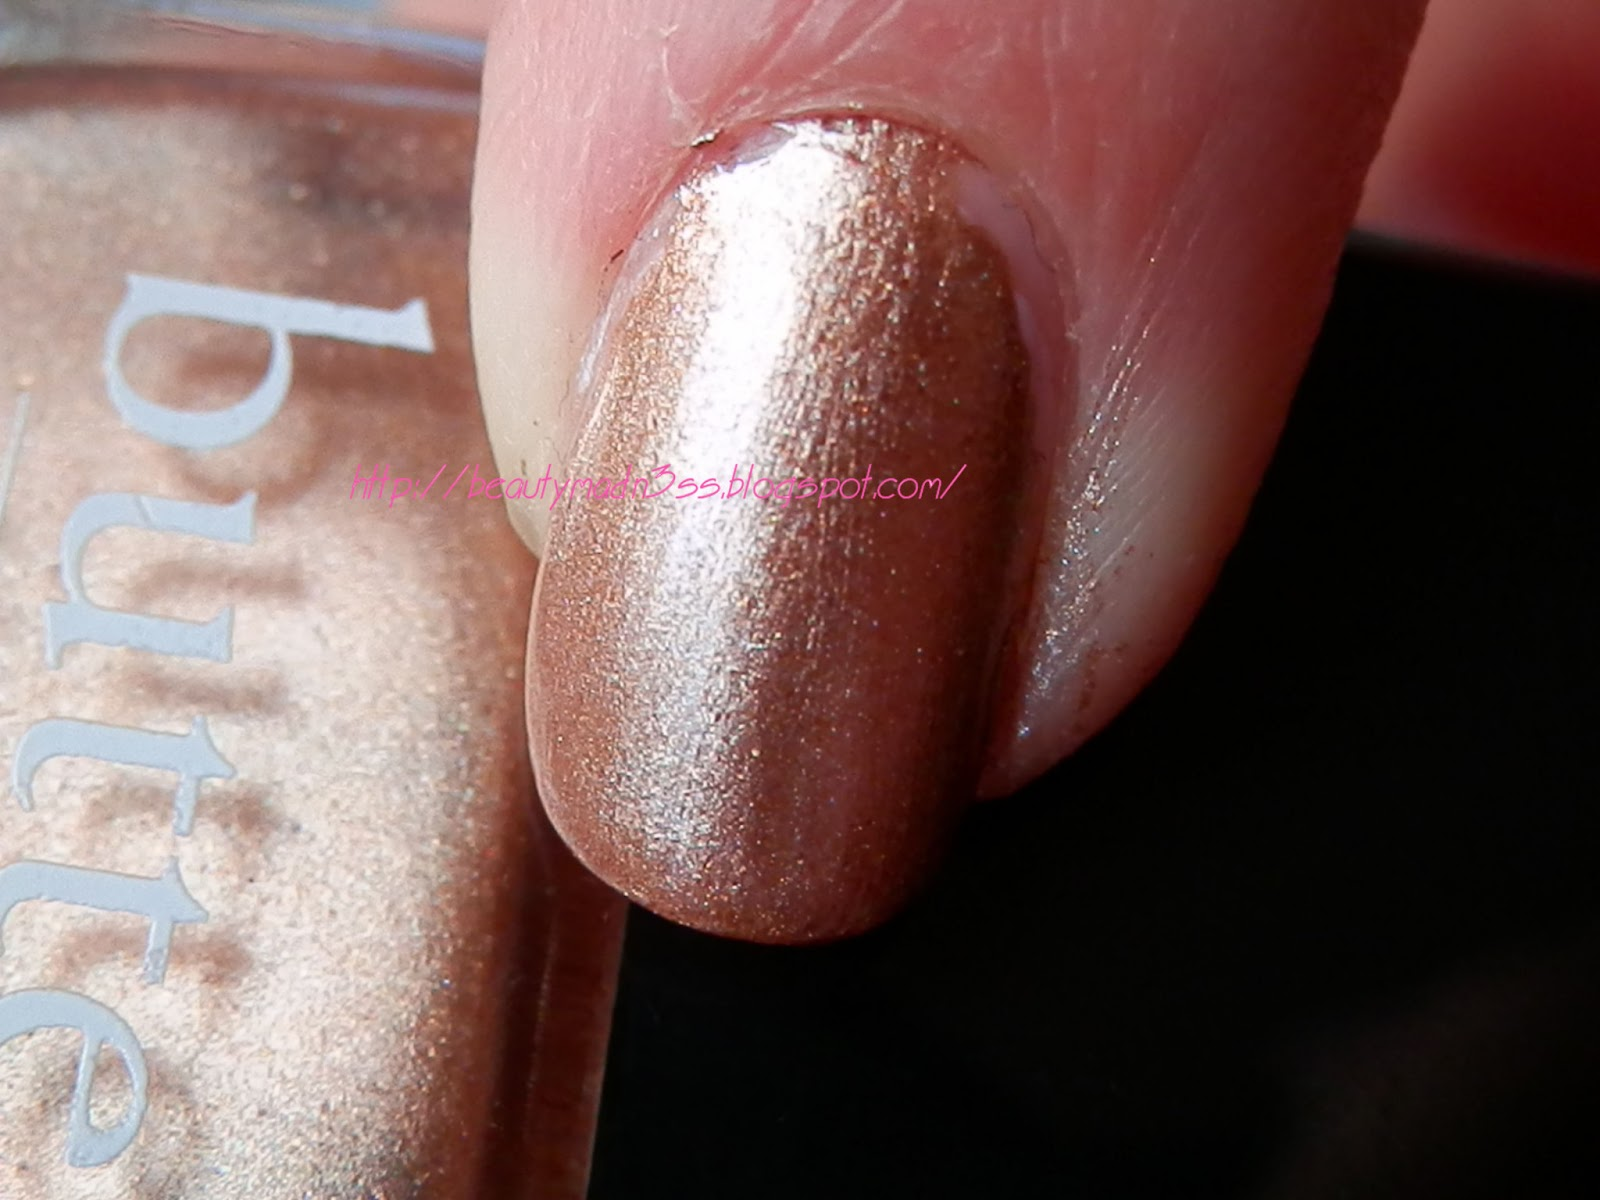 Butter LONDON The Old Bill swatch